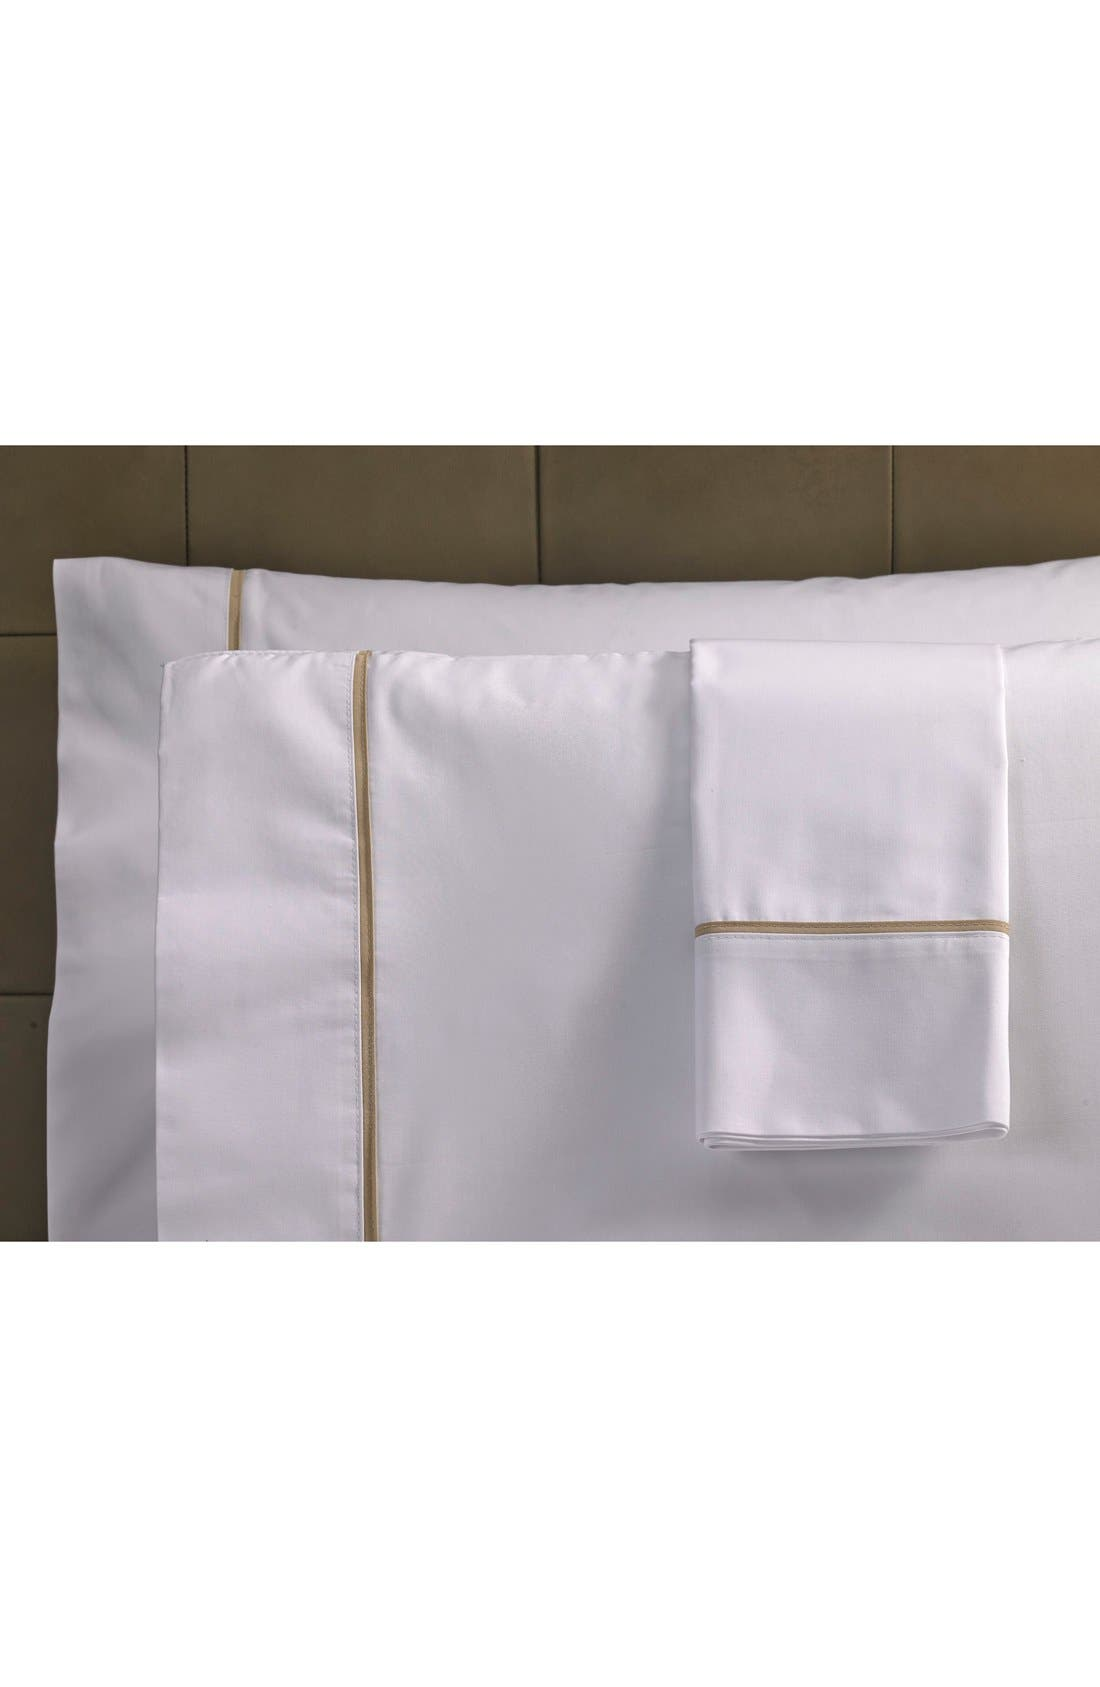 Westin At Home Ultra Luxe 600 Thread Count Pillowcase